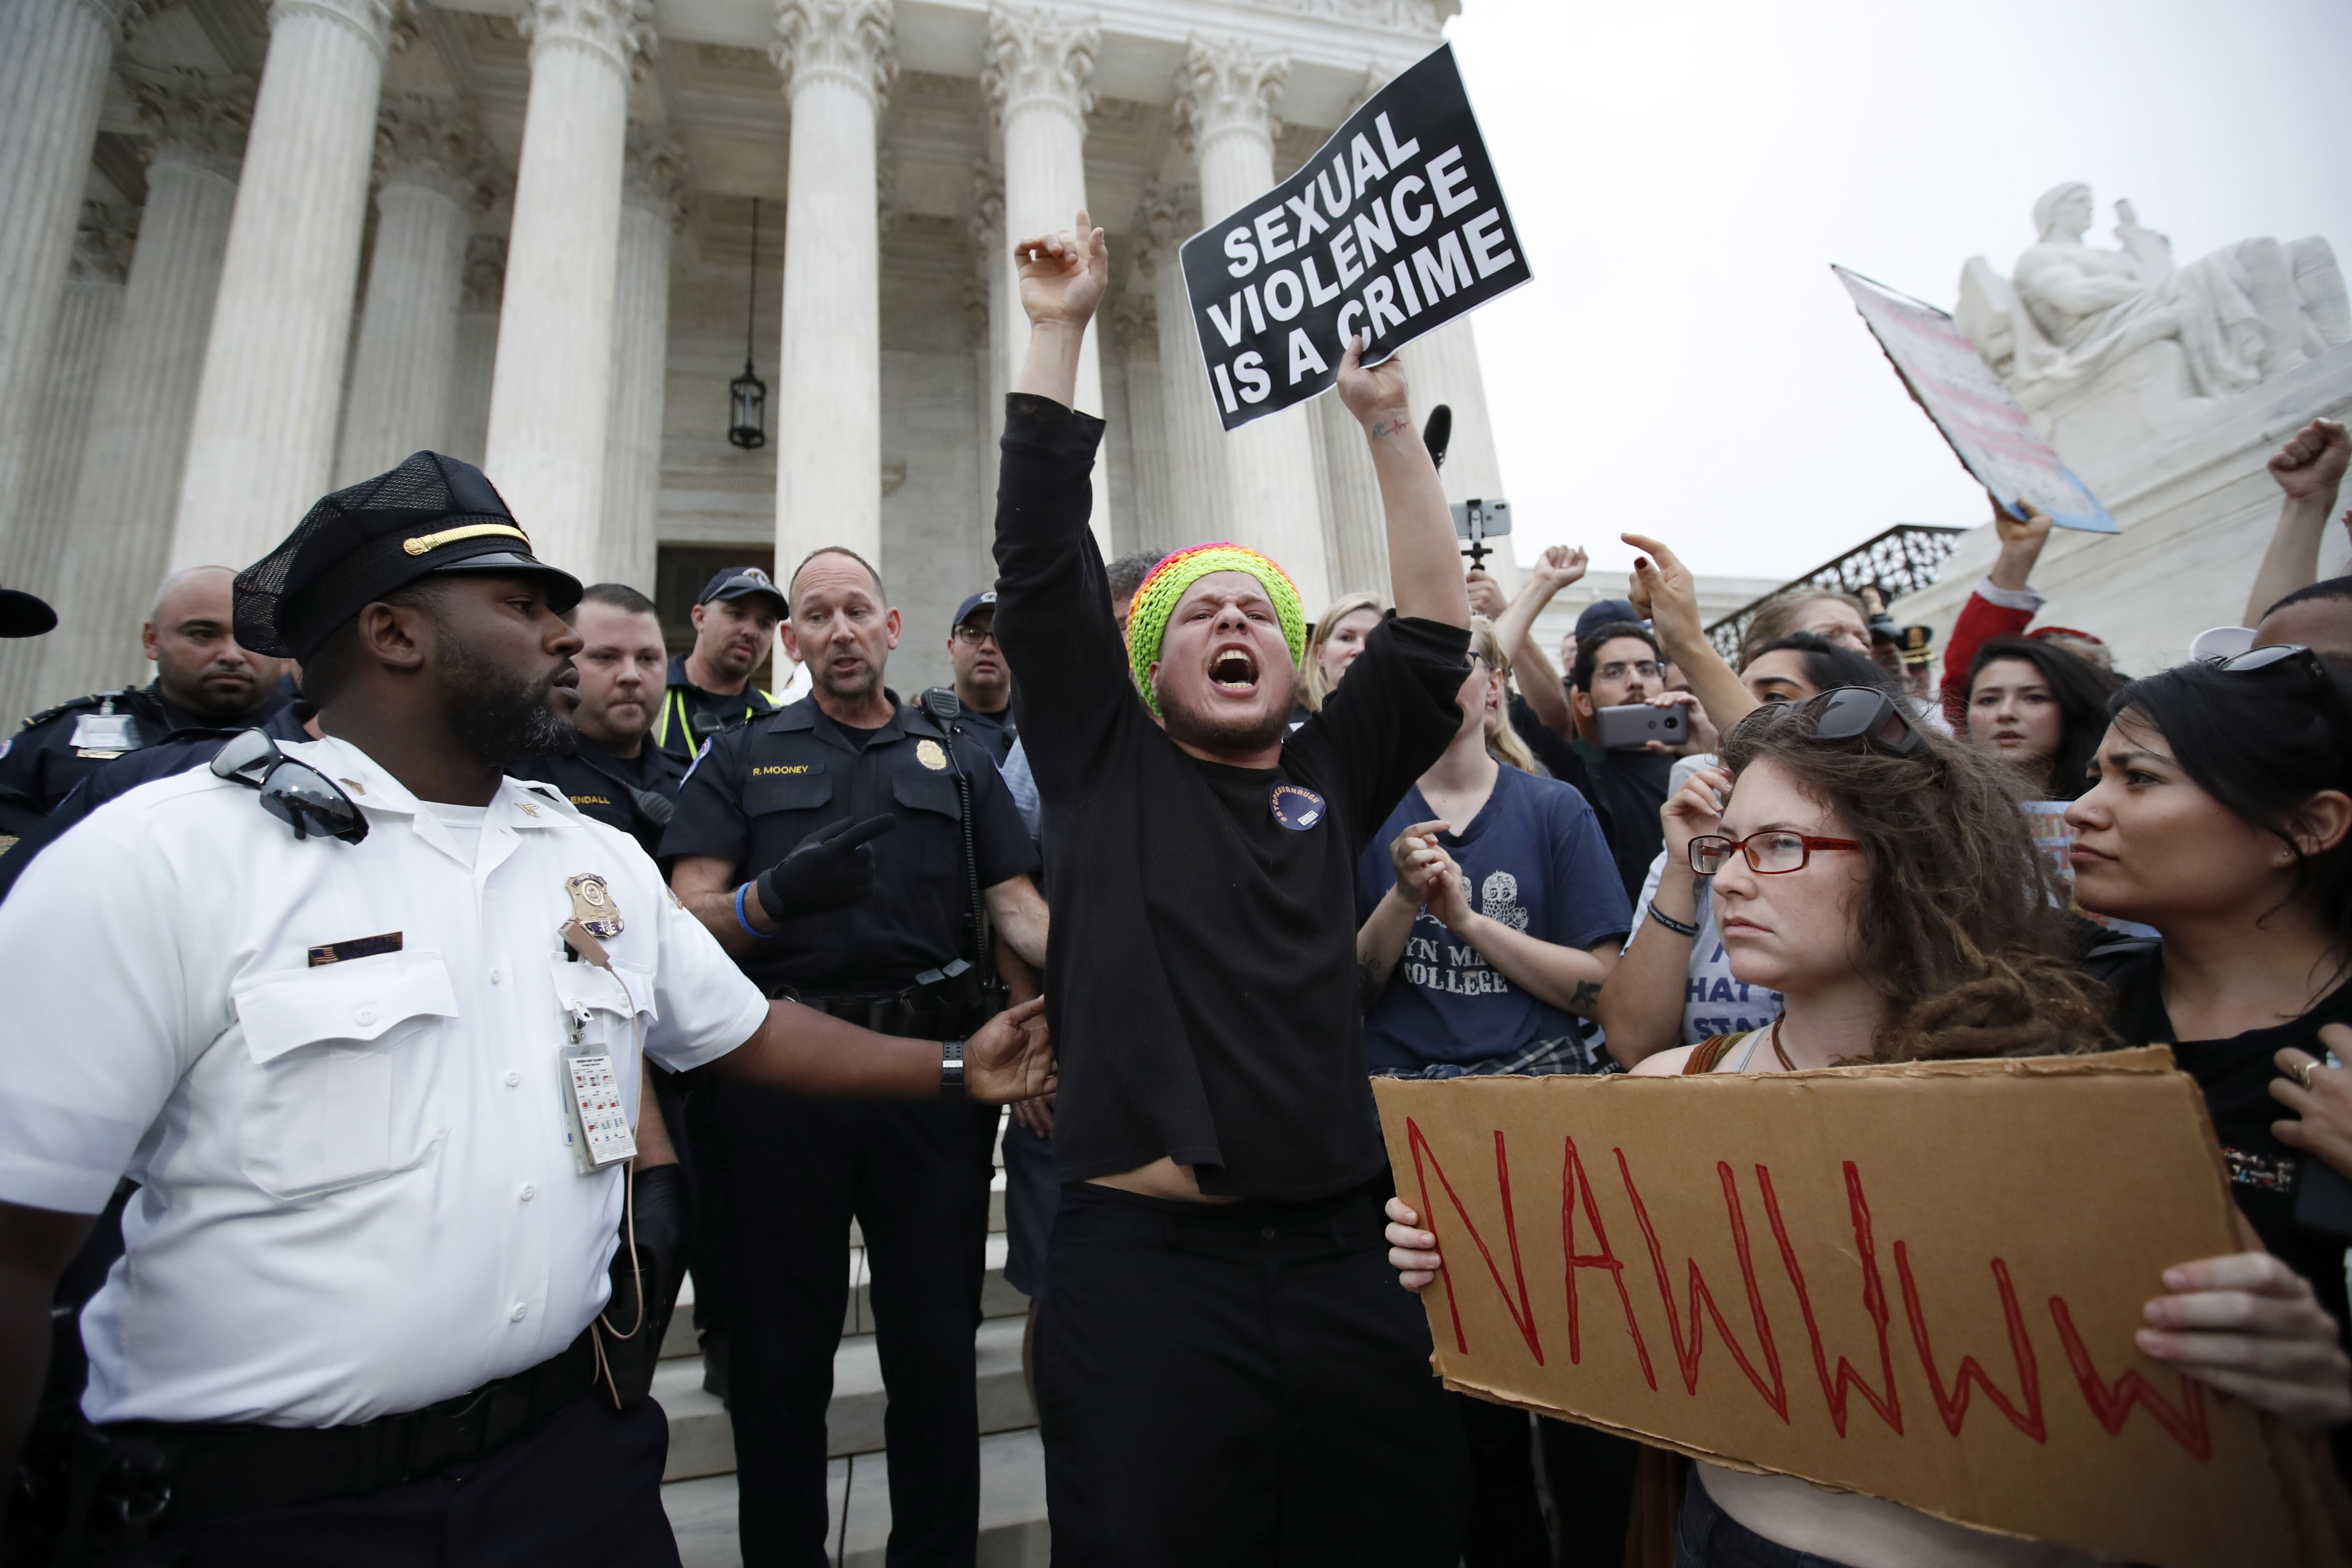 <p>Police move activists as they protest on the steps of the Supreme Court after the confirmation vote of Supreme Court nominee Brett Kavanaugh, on Capitol Hill, Saturday, Oct. 6, 2018 in Washington. (Photo: Alex Brandon/AP) </p>